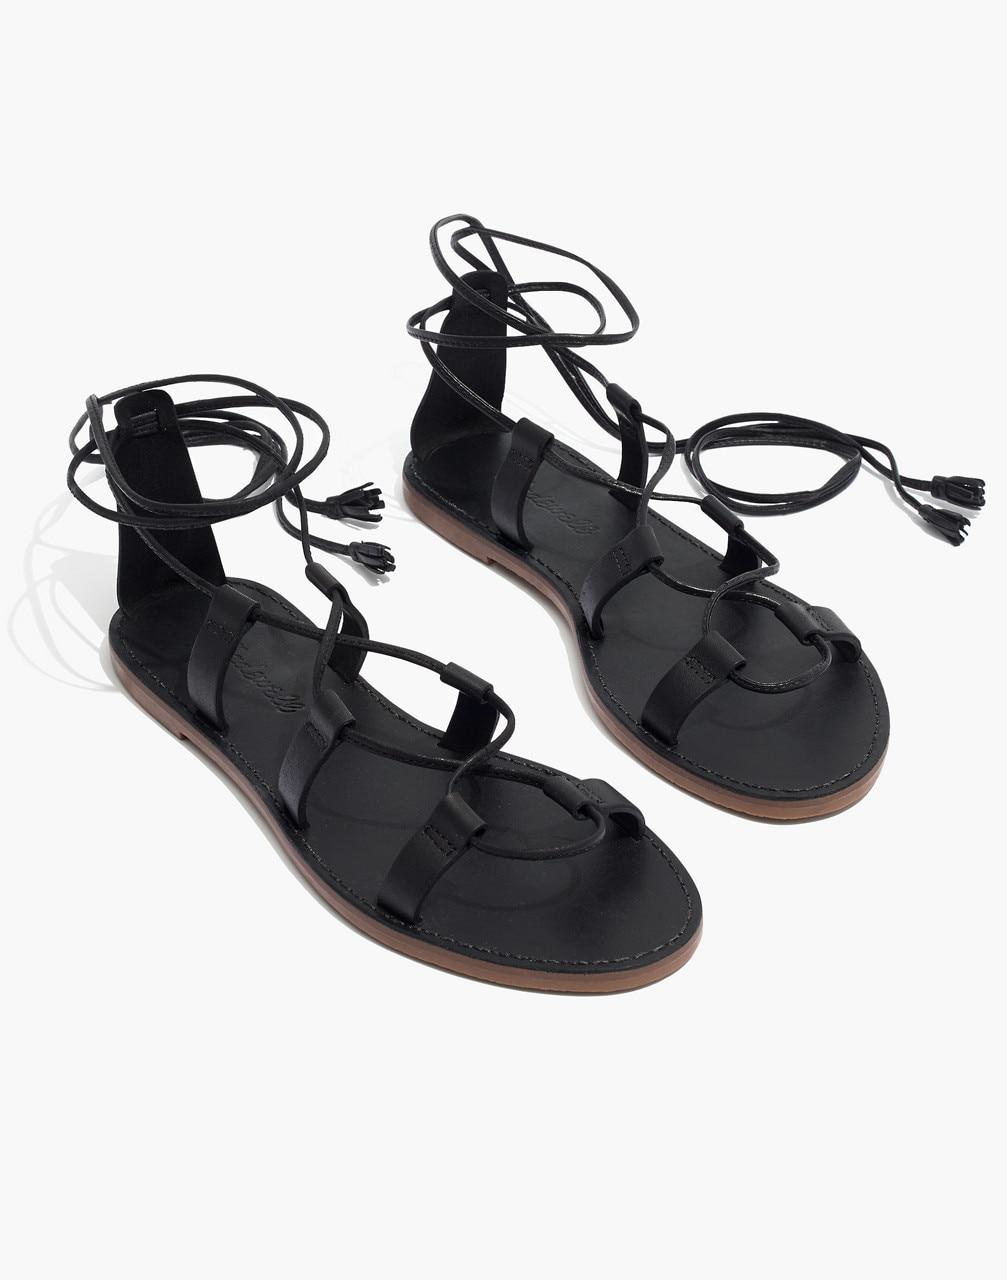 7bfd527d190 Lyst - Madewell The Boardwalk Lace-up Sandal in Black